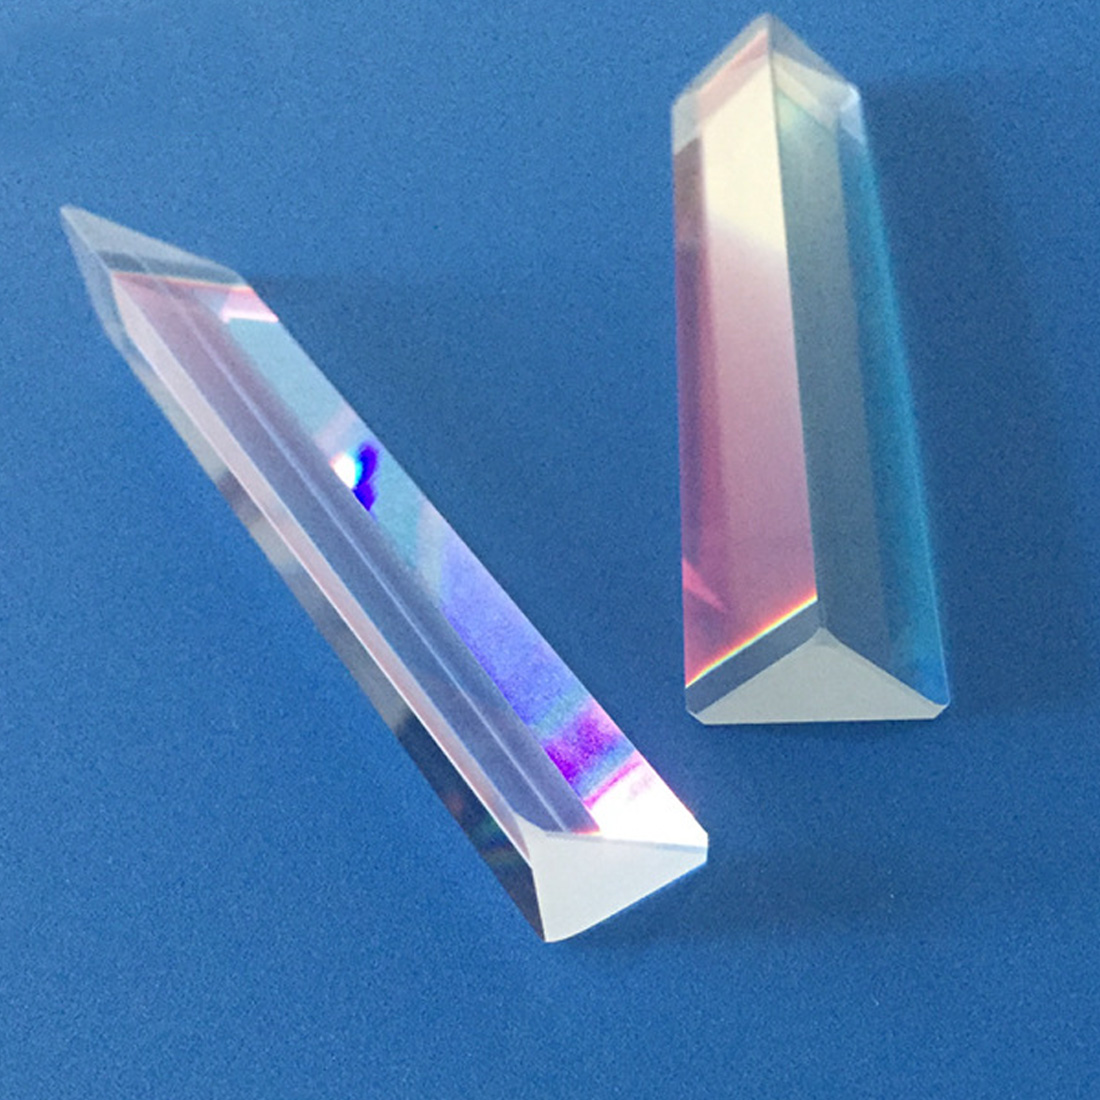 15x15x80mm Right Angle Reflecting Triangular Prism K9 Optical Glass For Teaching Light Spectrum